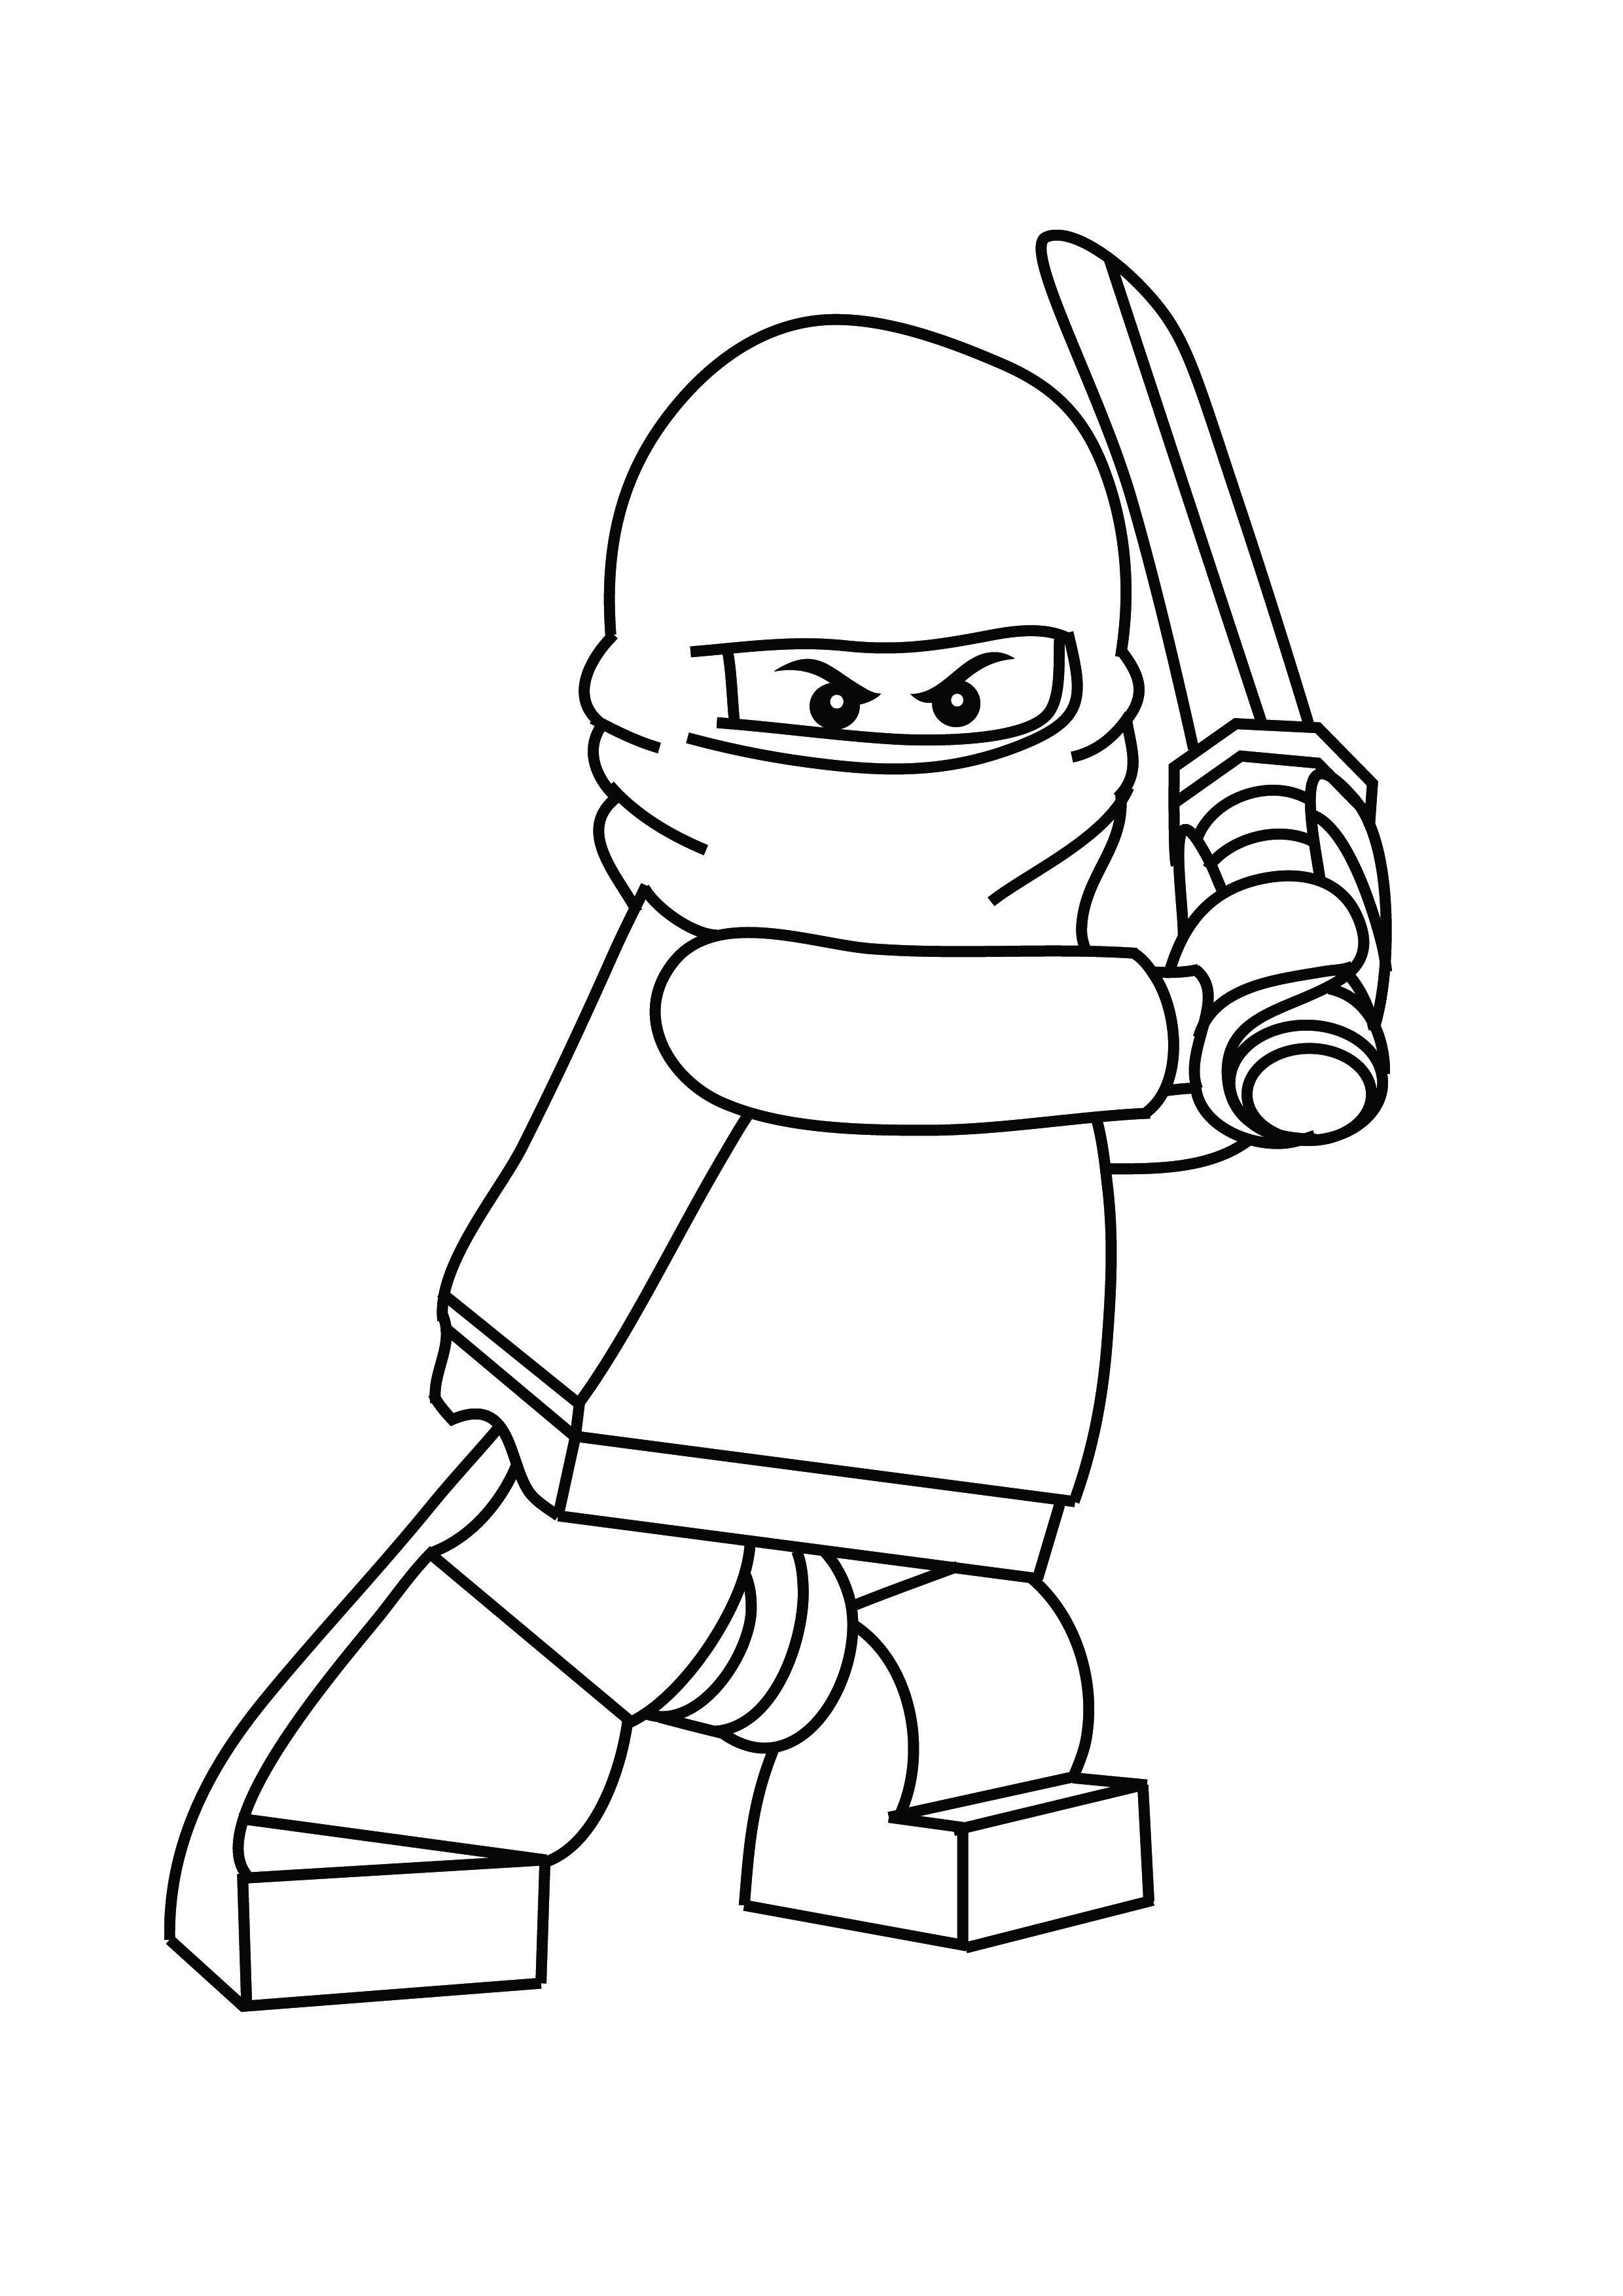 2480x3508 Lego People Coloring Pages Acpra